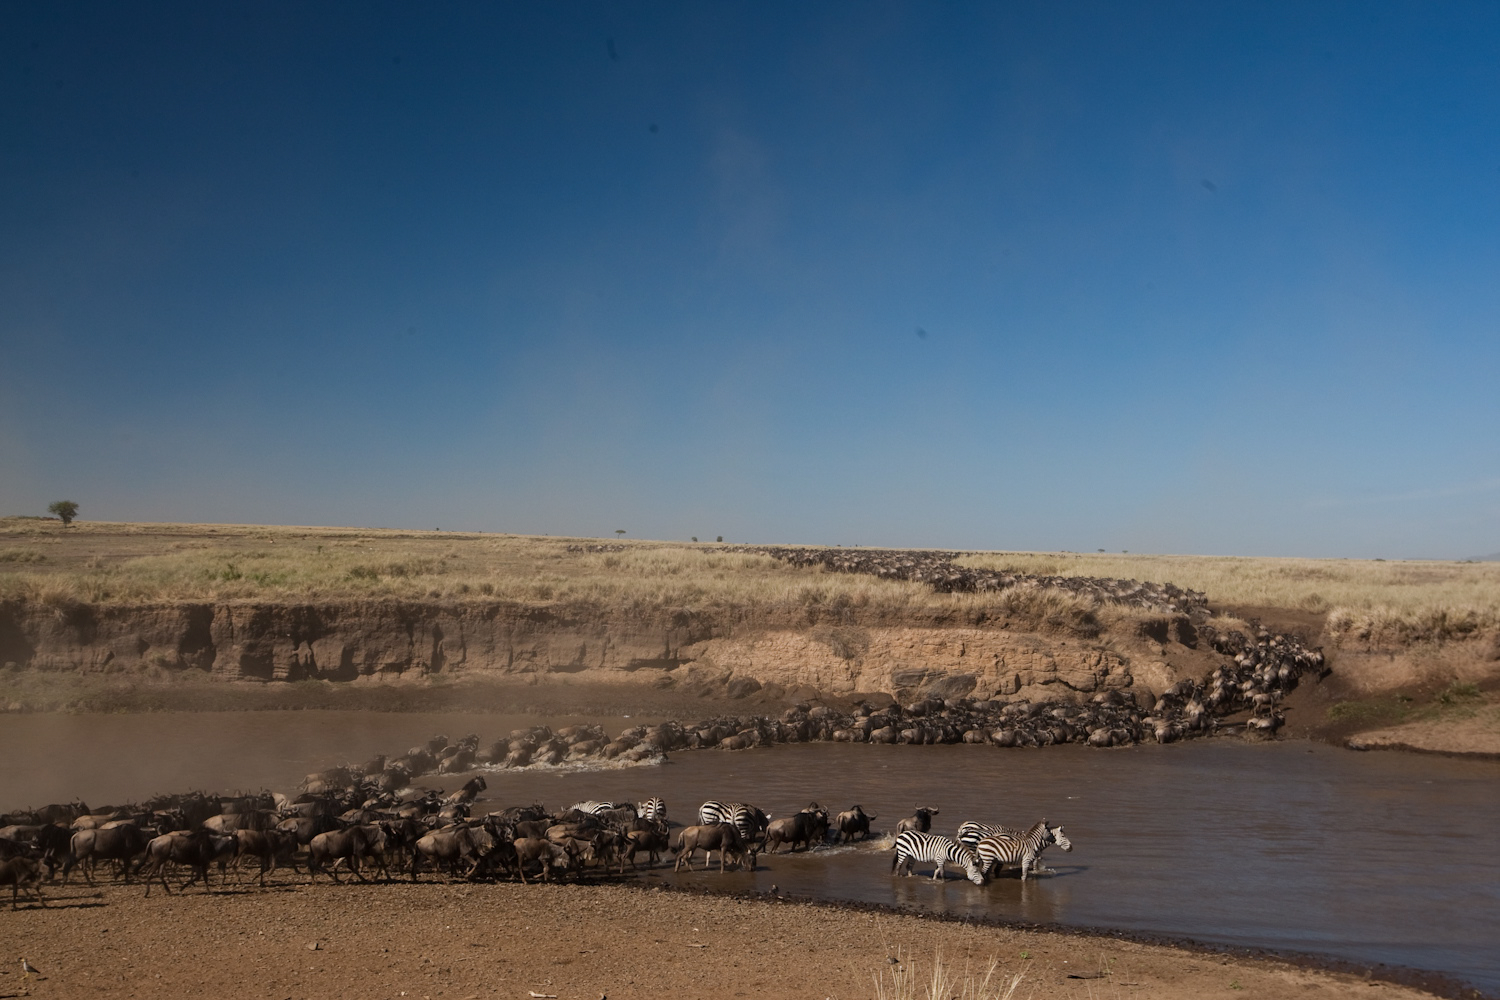 Wildebeest and Zebra crossing river during migration